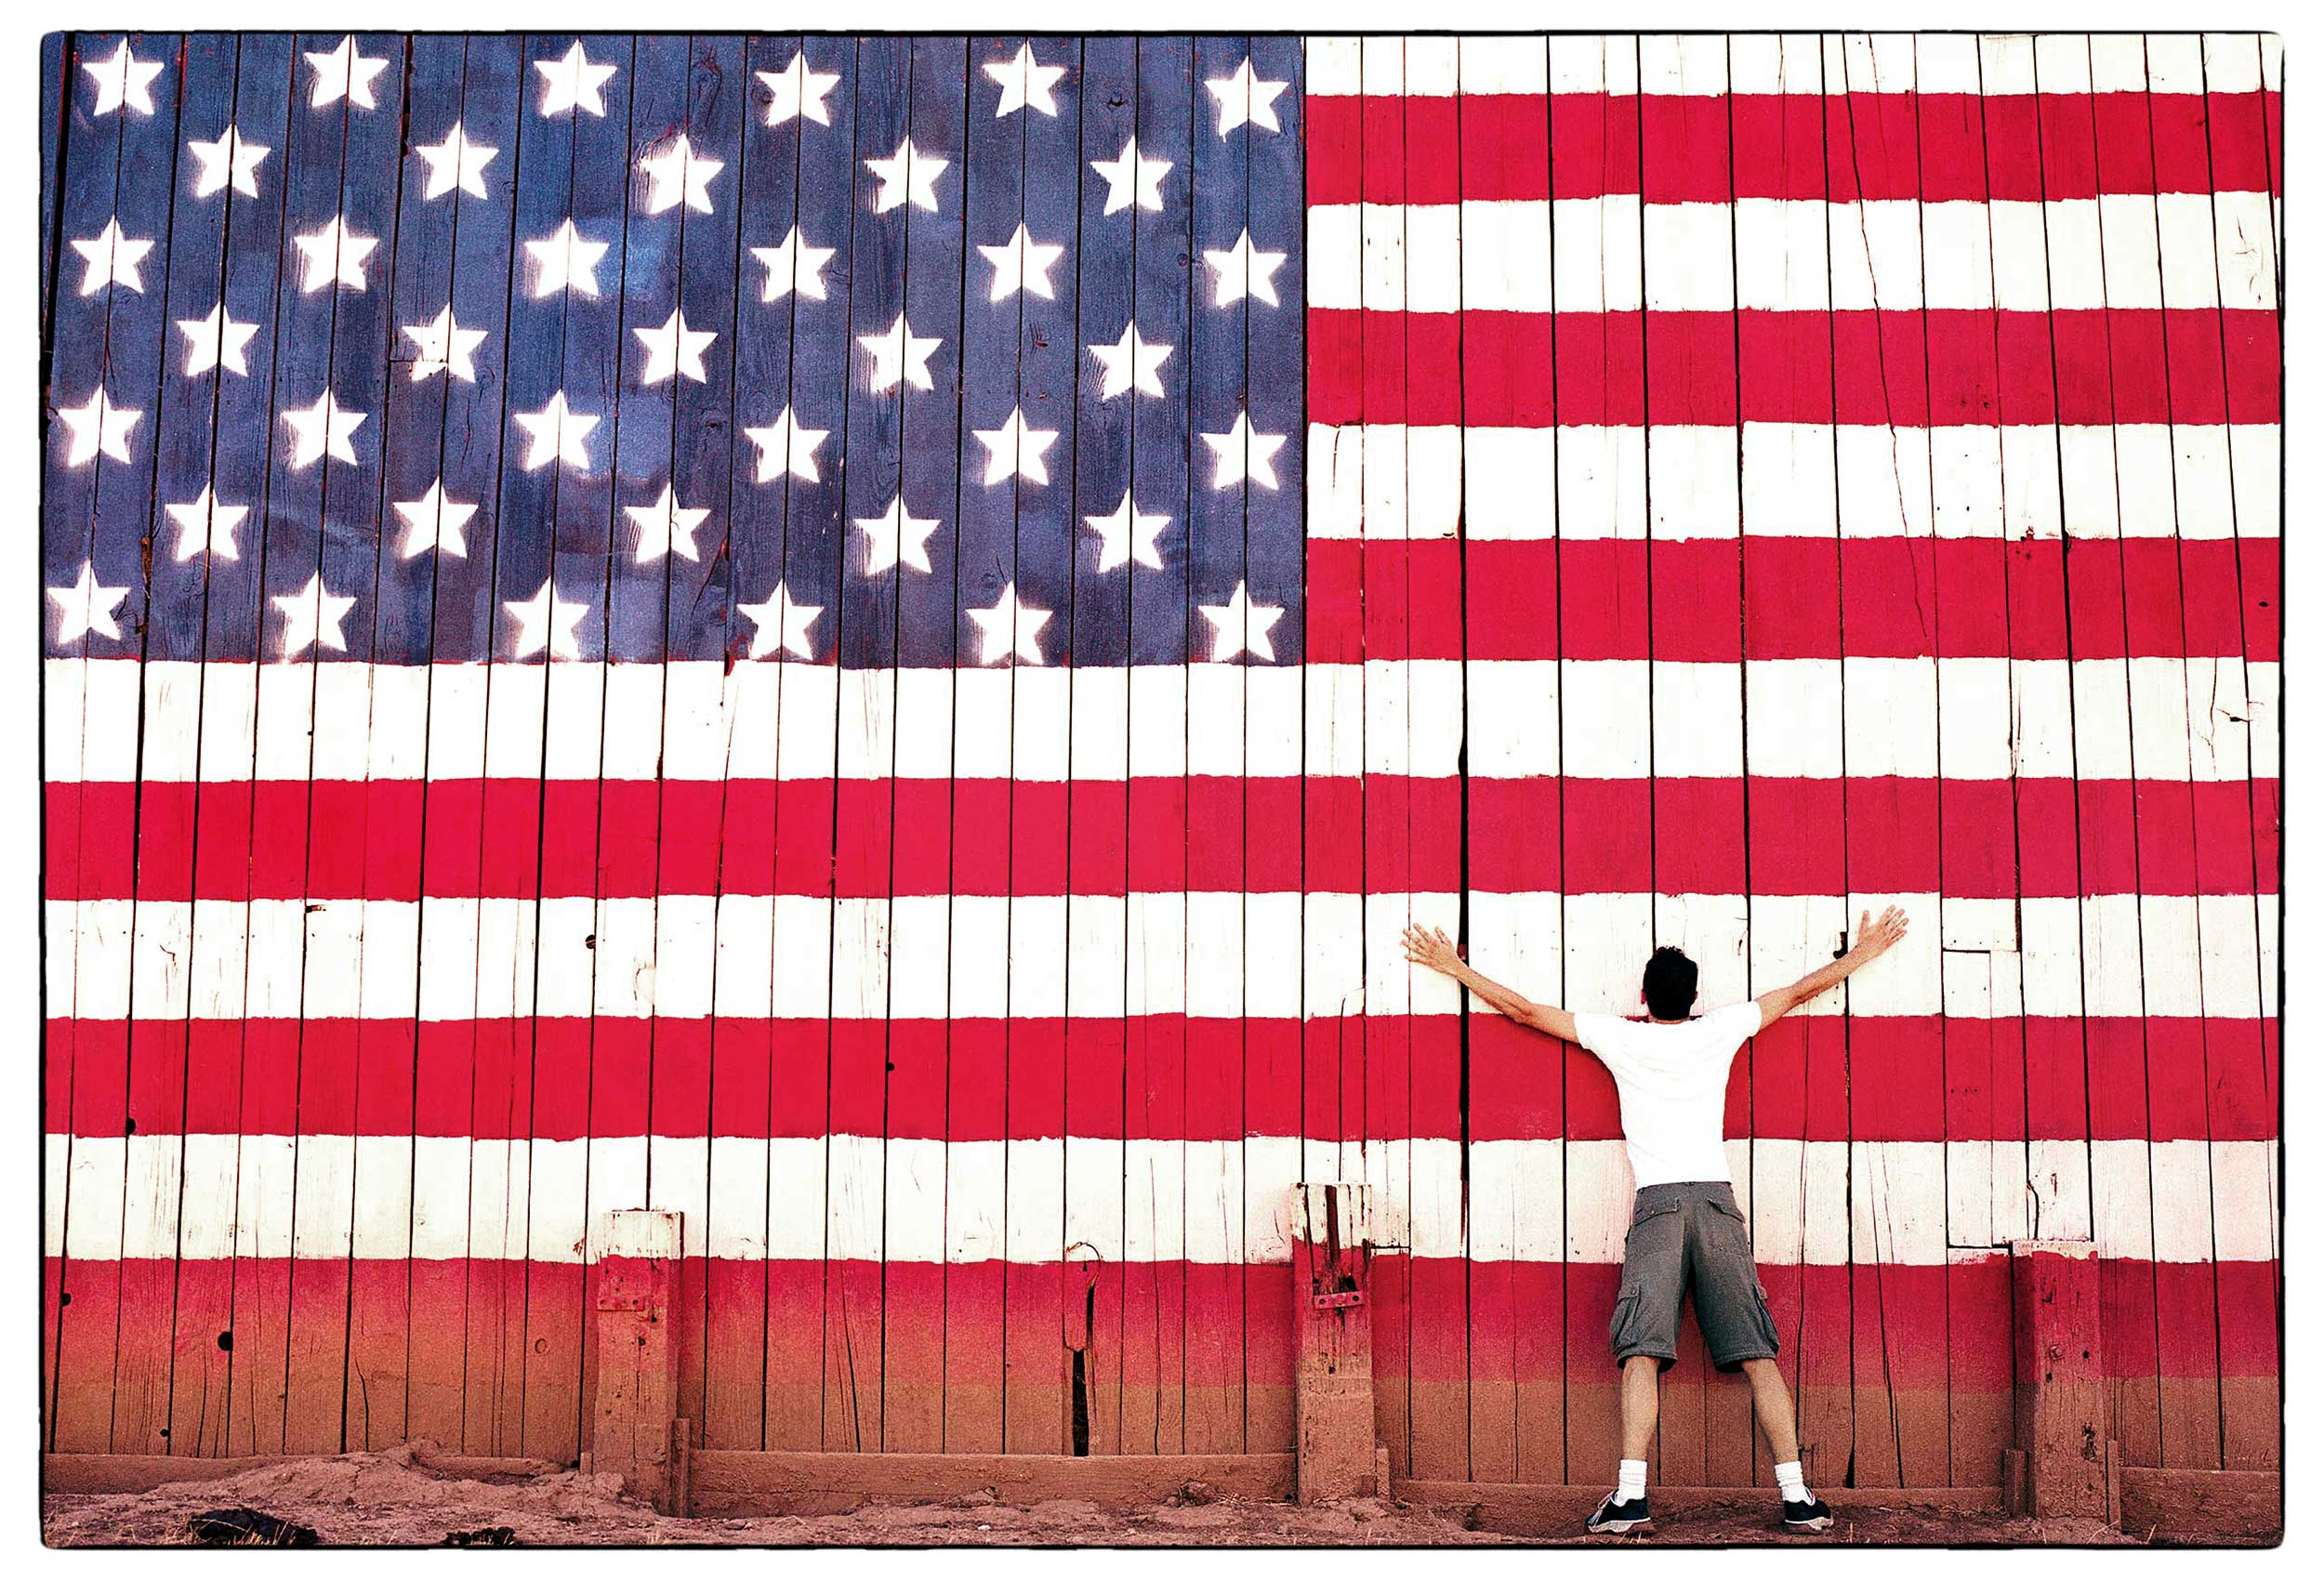 a-man-hugs-the-american-flag-on-the-side-of-a-barn-in-san-mateo-california